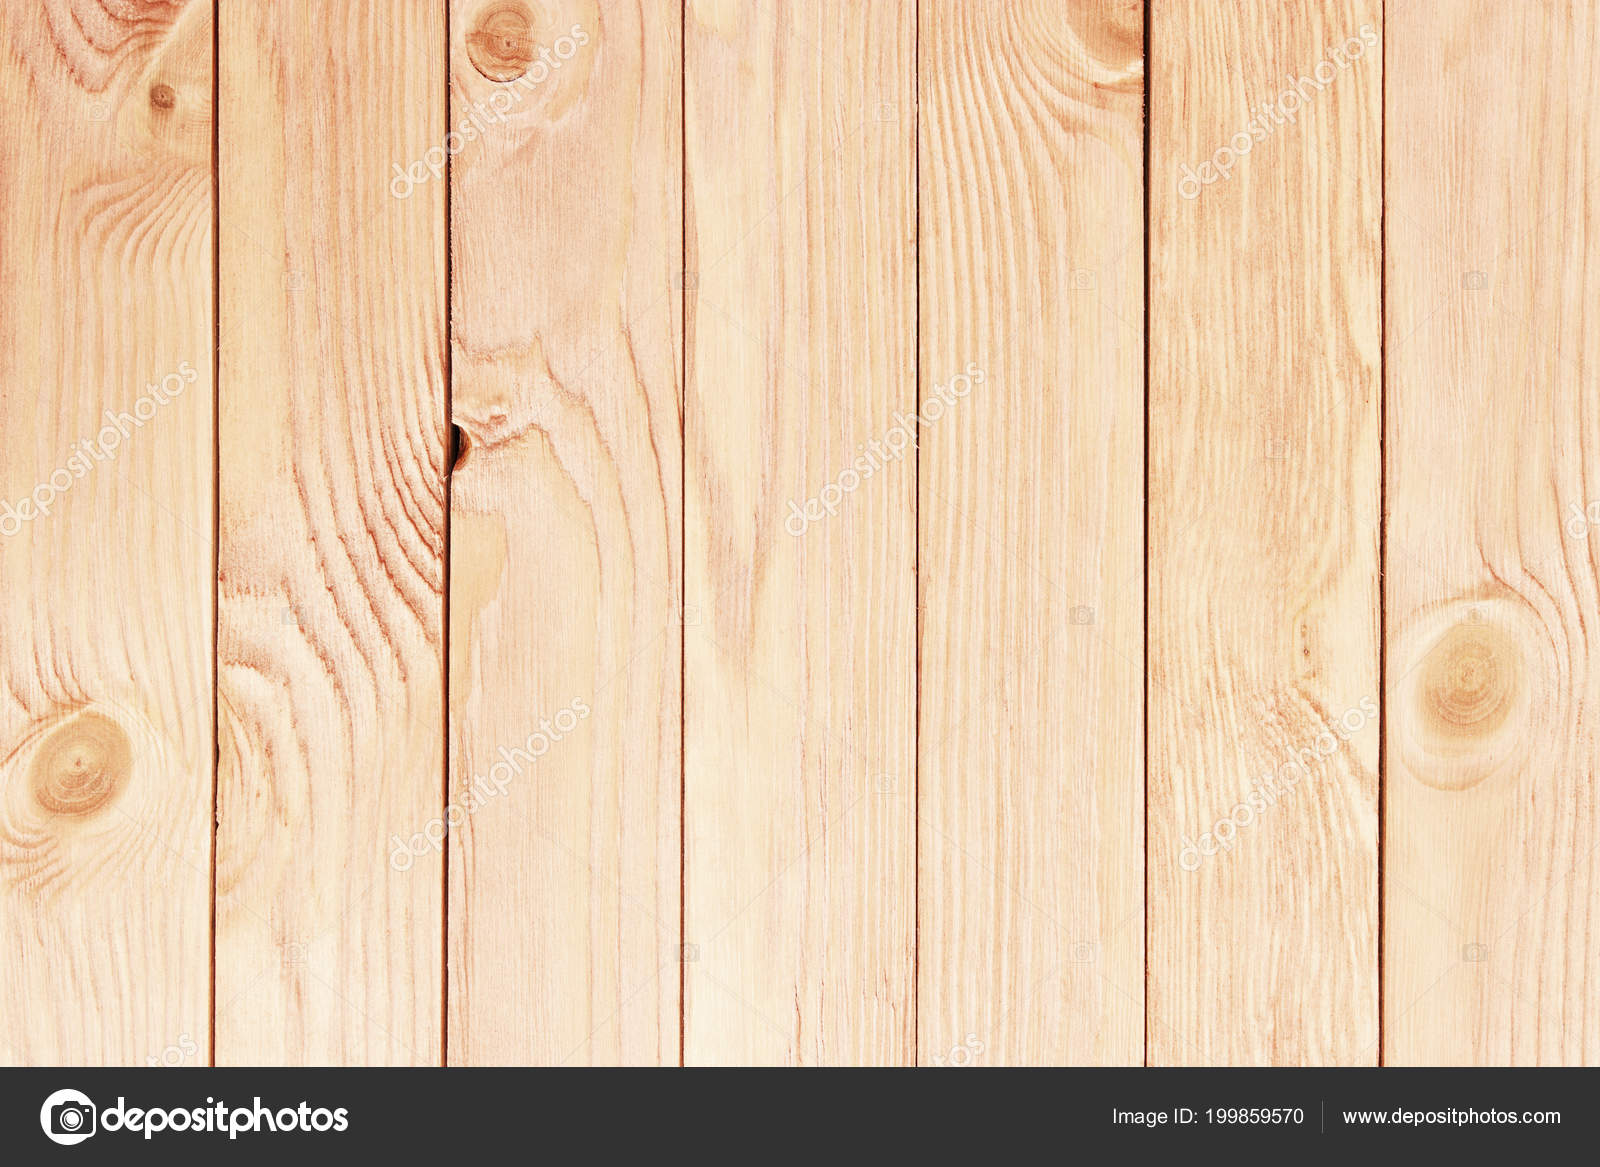 wood floor texture table bright wooden board background. Black Bedroom Furniture Sets. Home Design Ideas